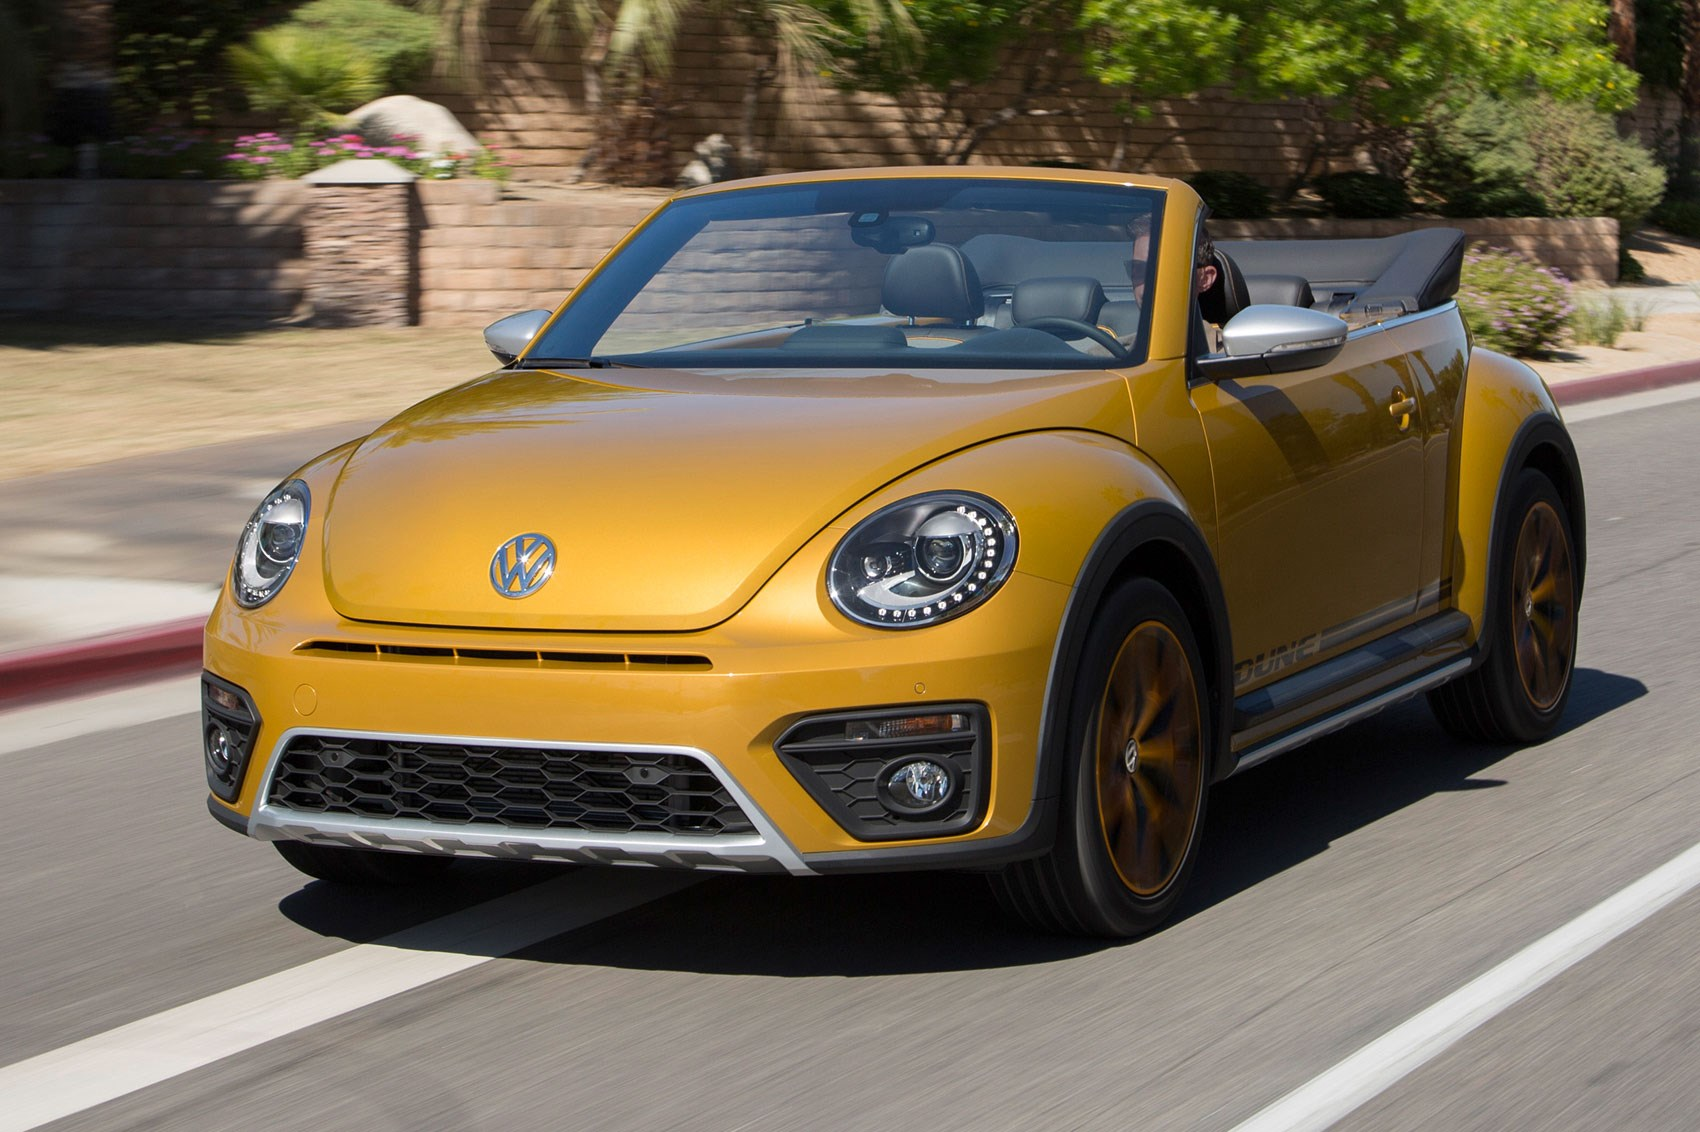 Vw Beetle Dune Cabriolet 1 2 Tsi Dsg 2016 Review